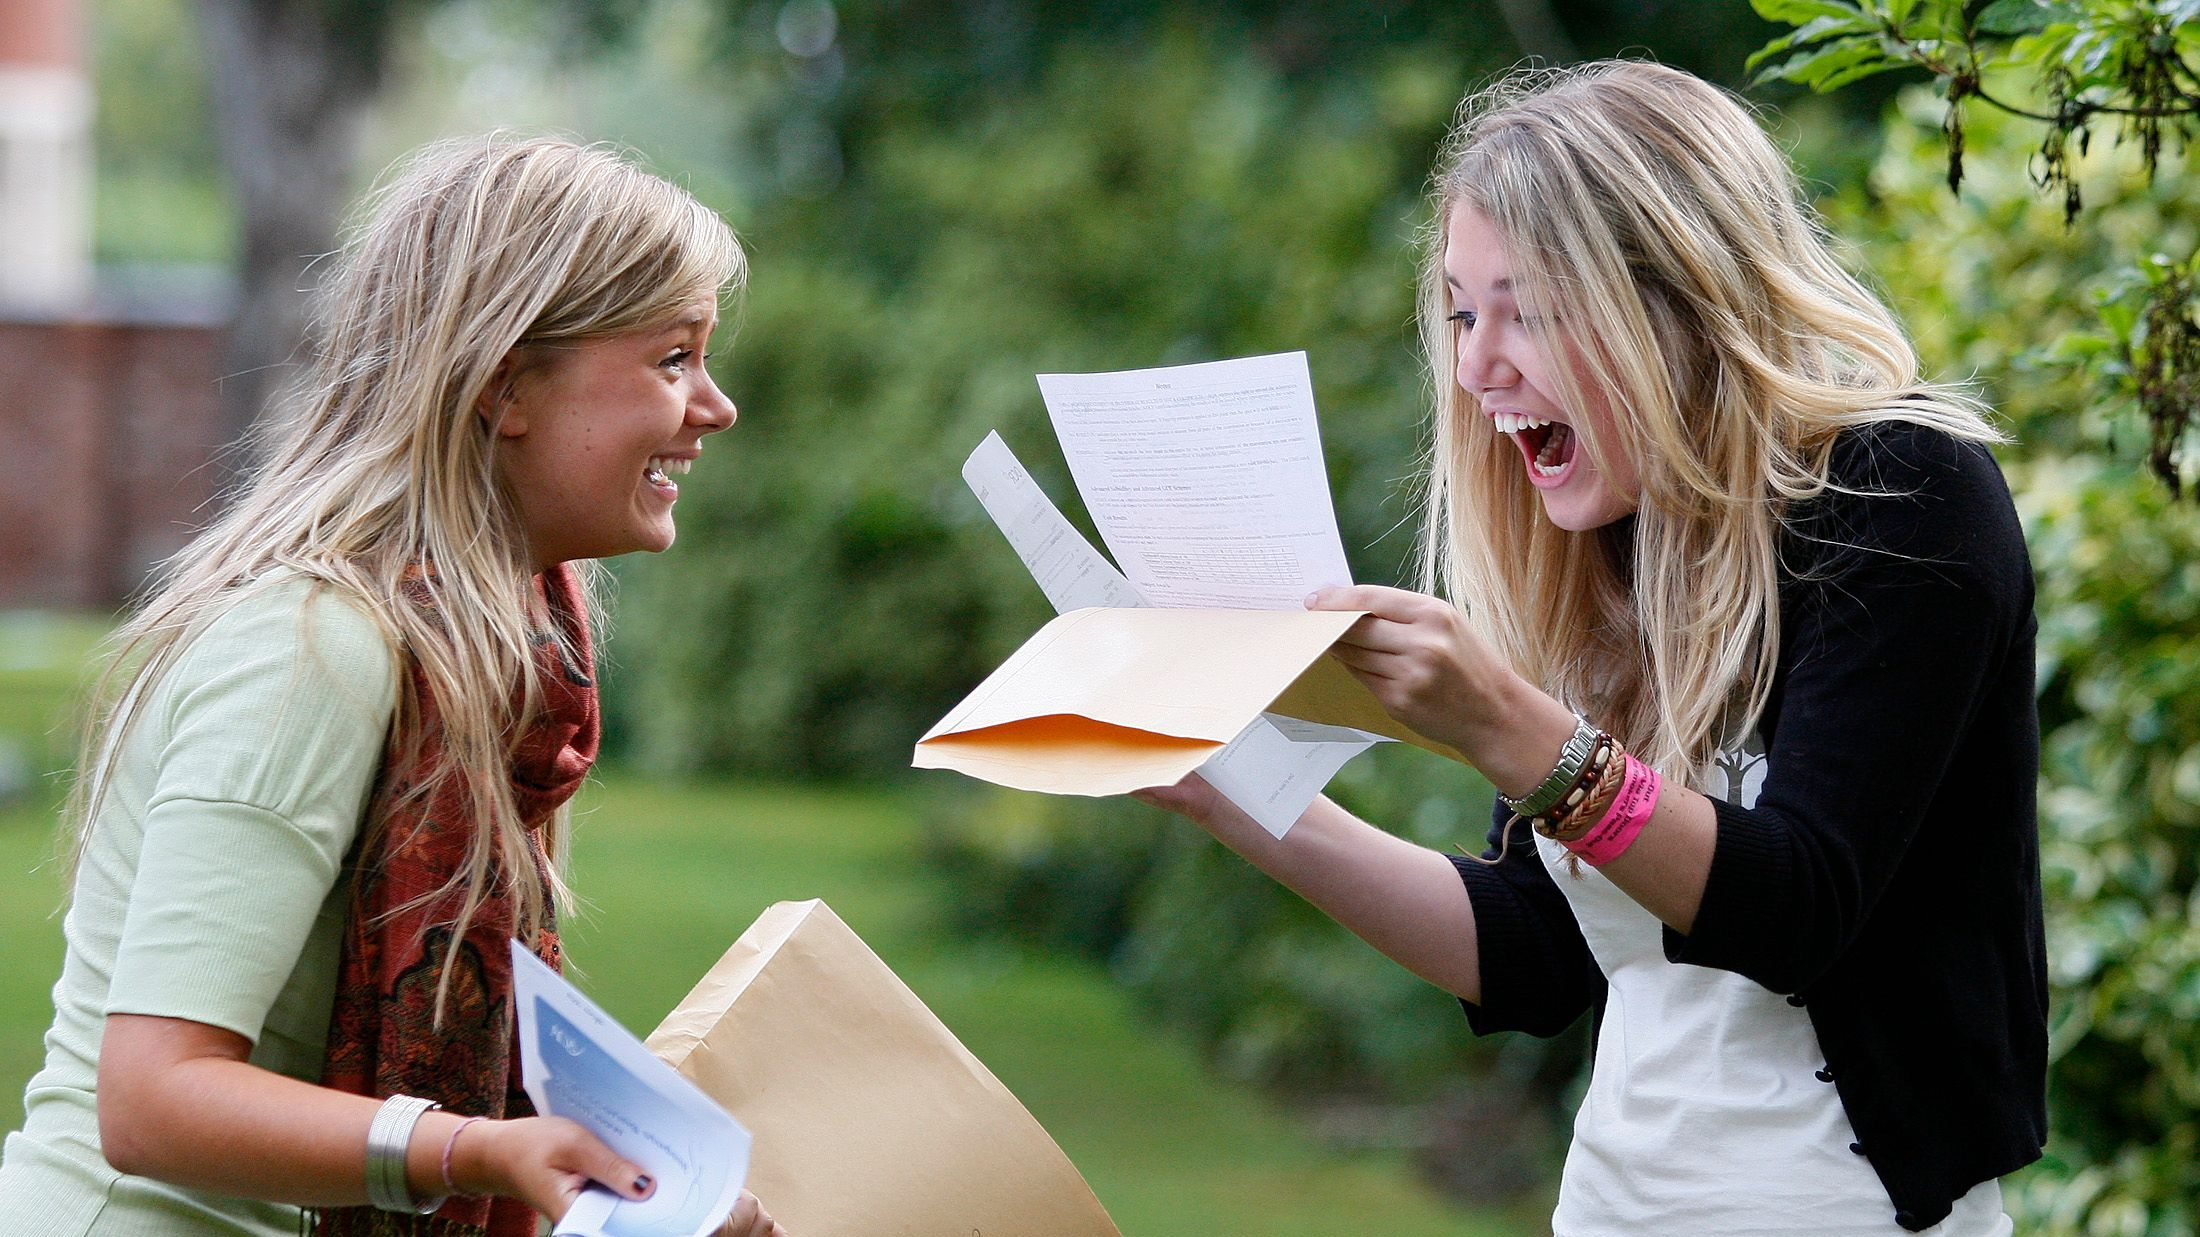 Pupils Alice Wright (L) and Rebecca Pinder from Withington Girls School in Manchester, northern England, react after receiving their A-level exam results, August 16, 2007. Alice received five A grades, Rebecca received four grade A's and an AA merit. More than a quarter of A-level papers received the top grade this year, the highest percentage ever, according to figures released on Thursday. REUTERS/Phil Noble (BRITAIN) - GM1DVYBUMYAA